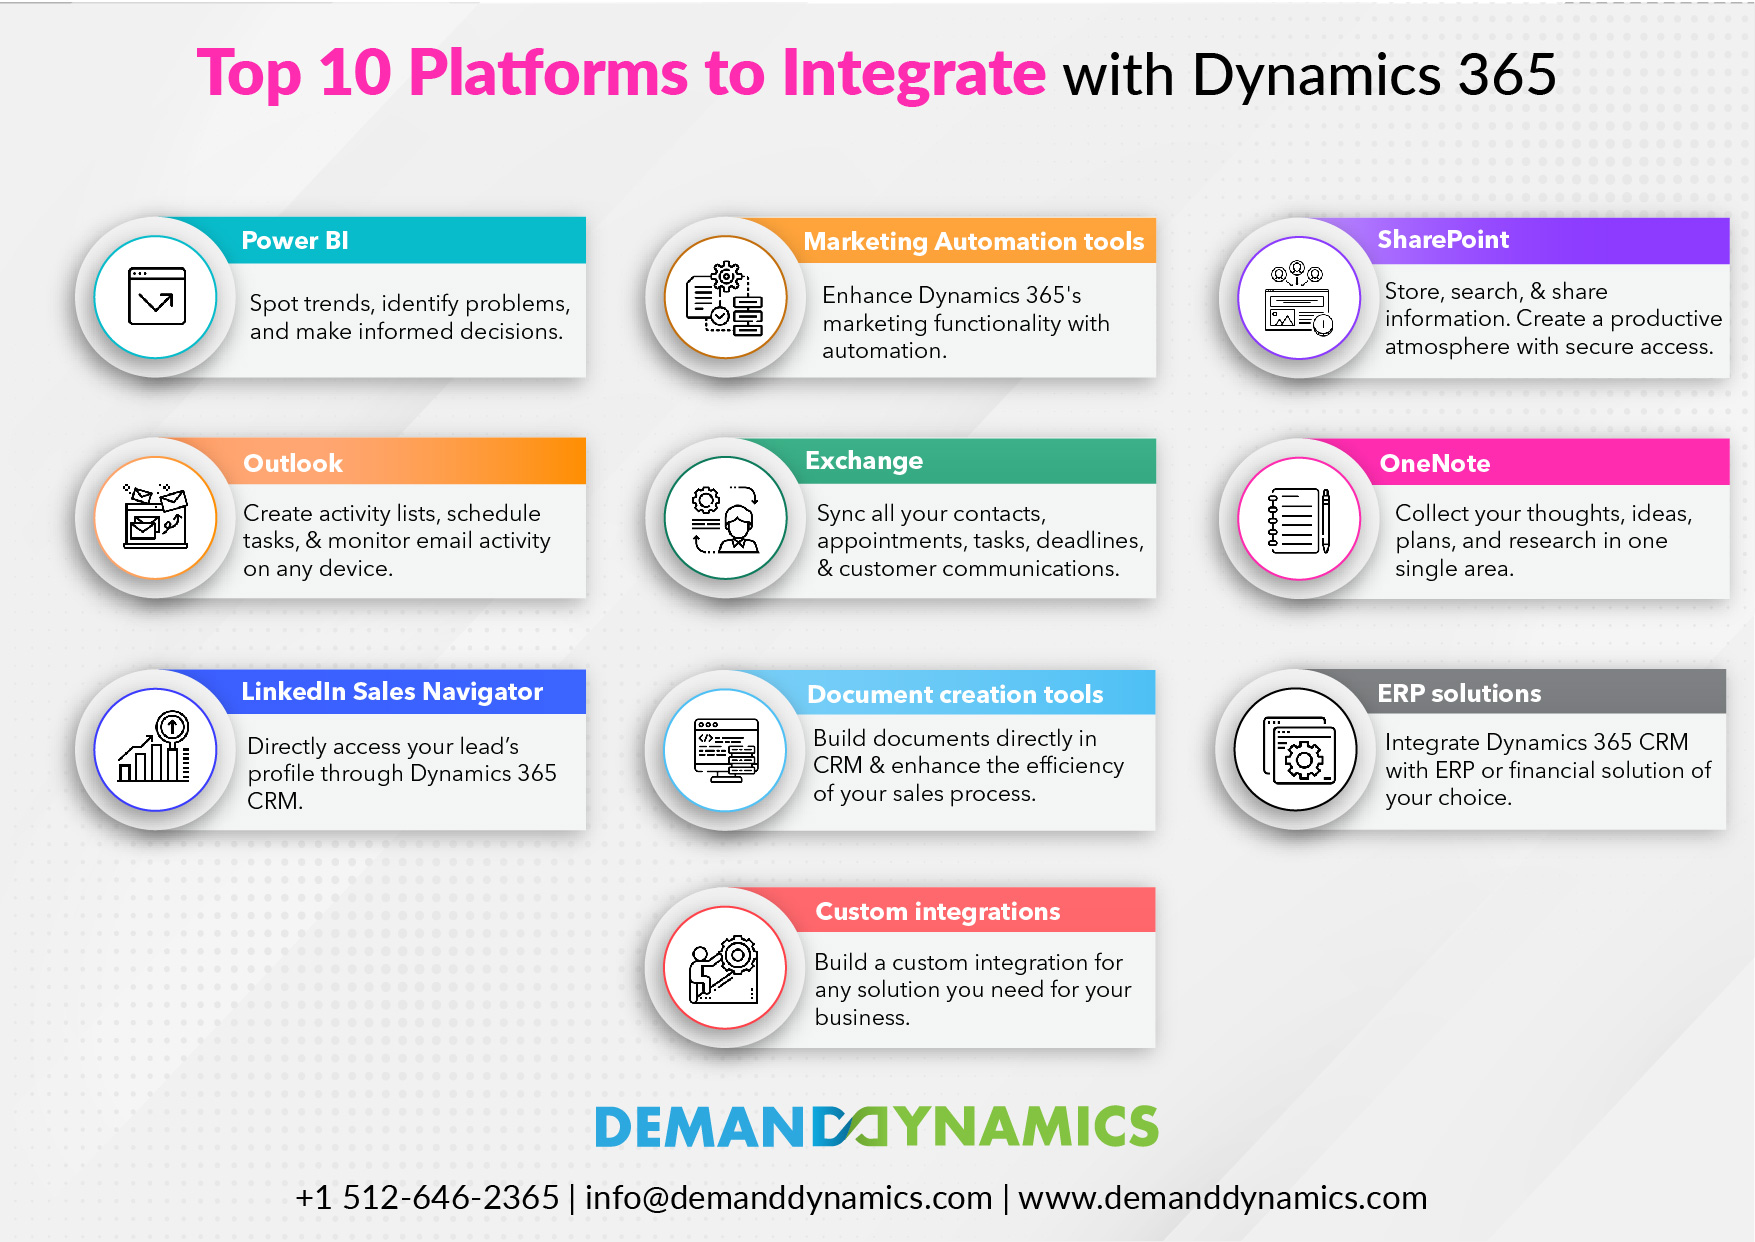 Top Platforms that can be integrated with Dynamics 365